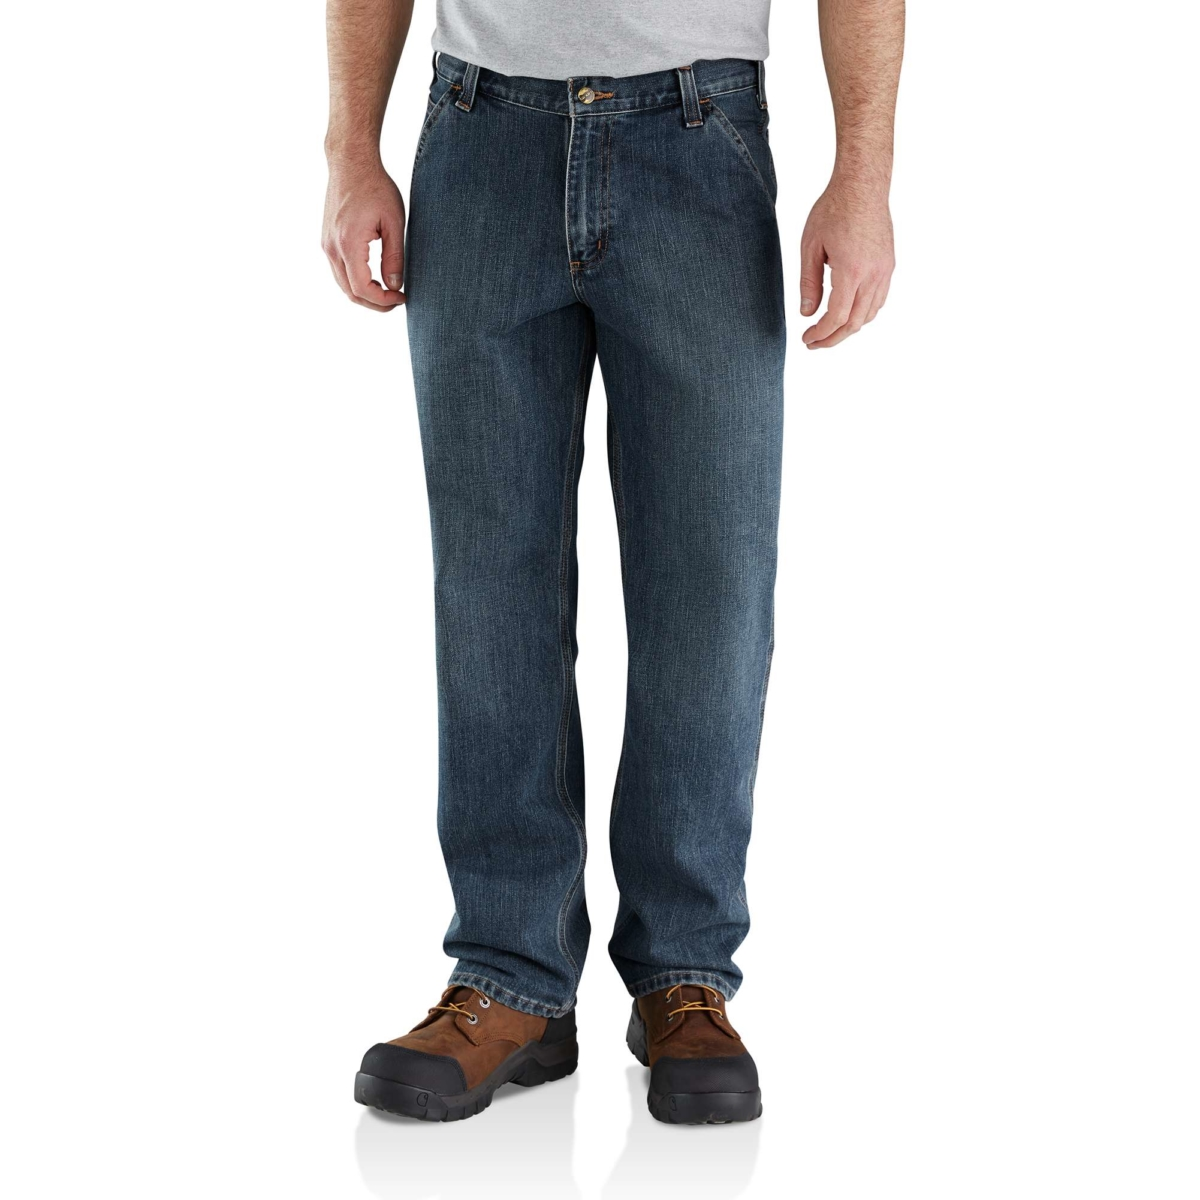 Carhartt Relaxed Fit Holter Dungaree Jean Blue USA - GOOFASH - Mens JEANS